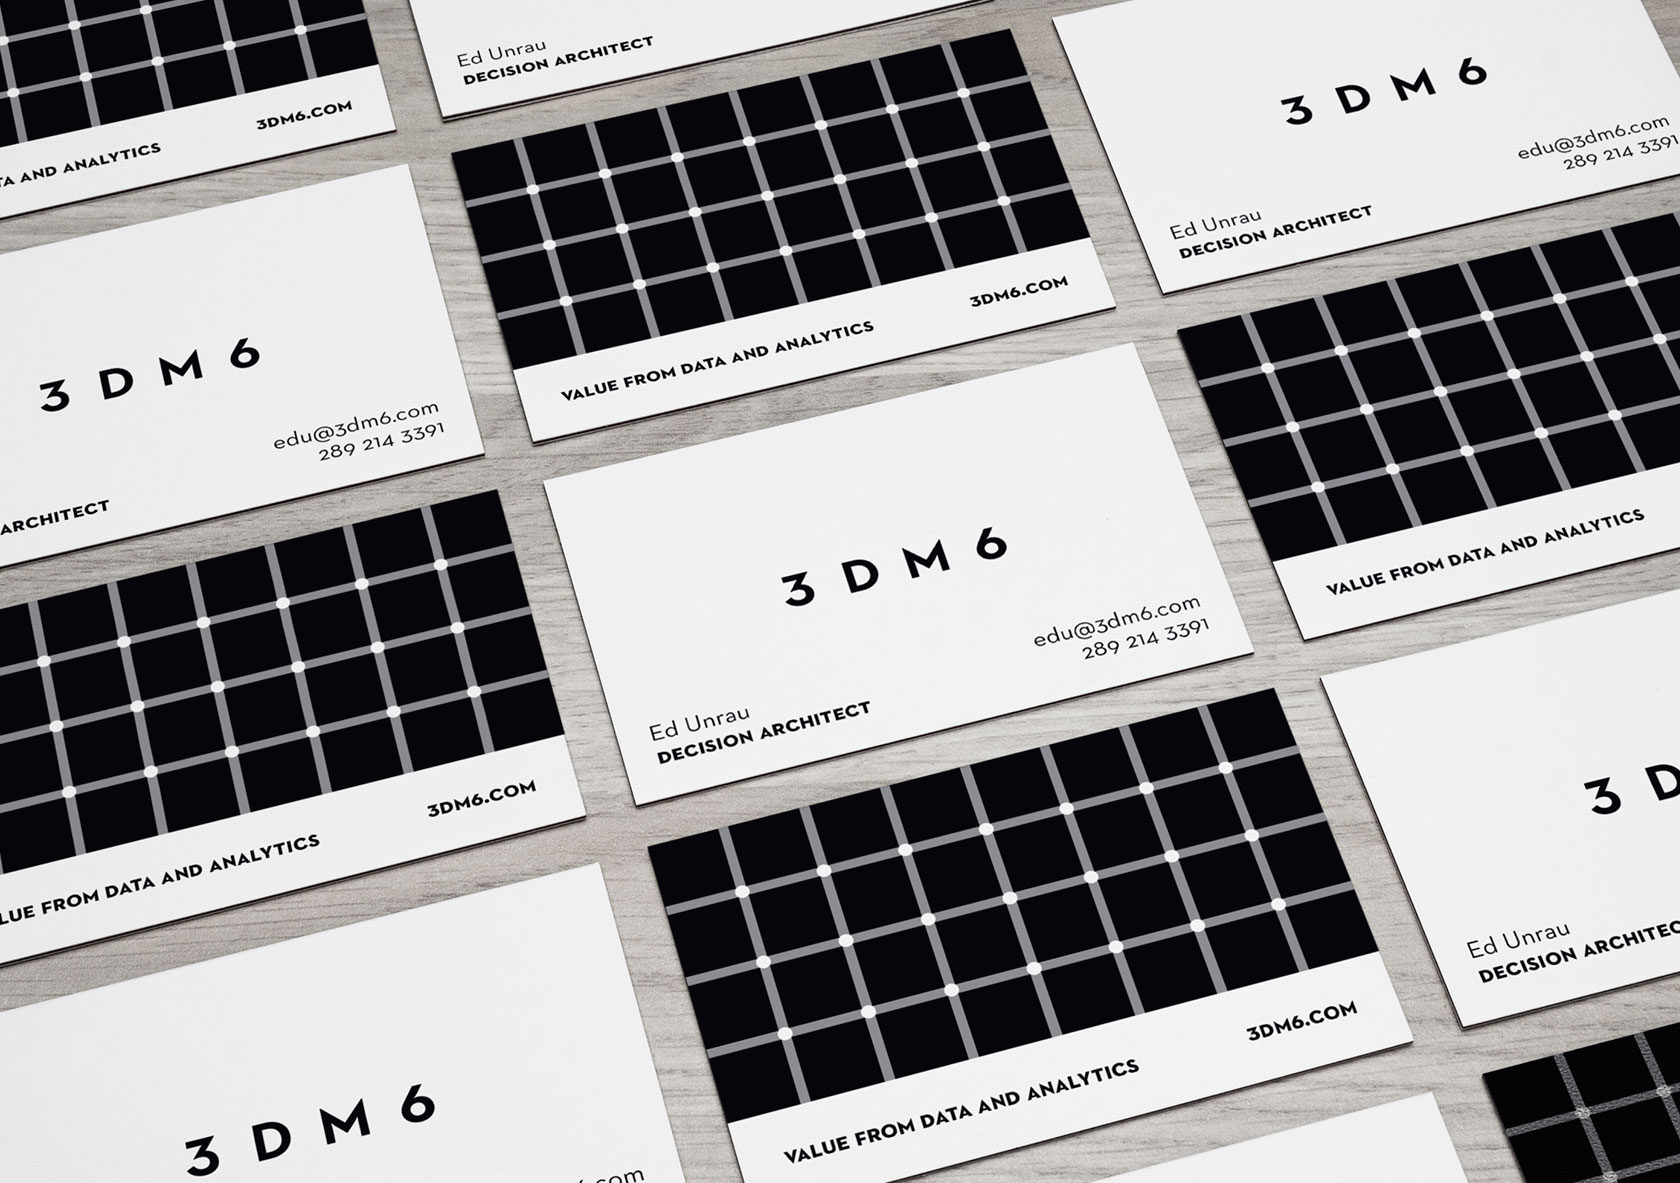 3DM6 Business Card Design By Furia